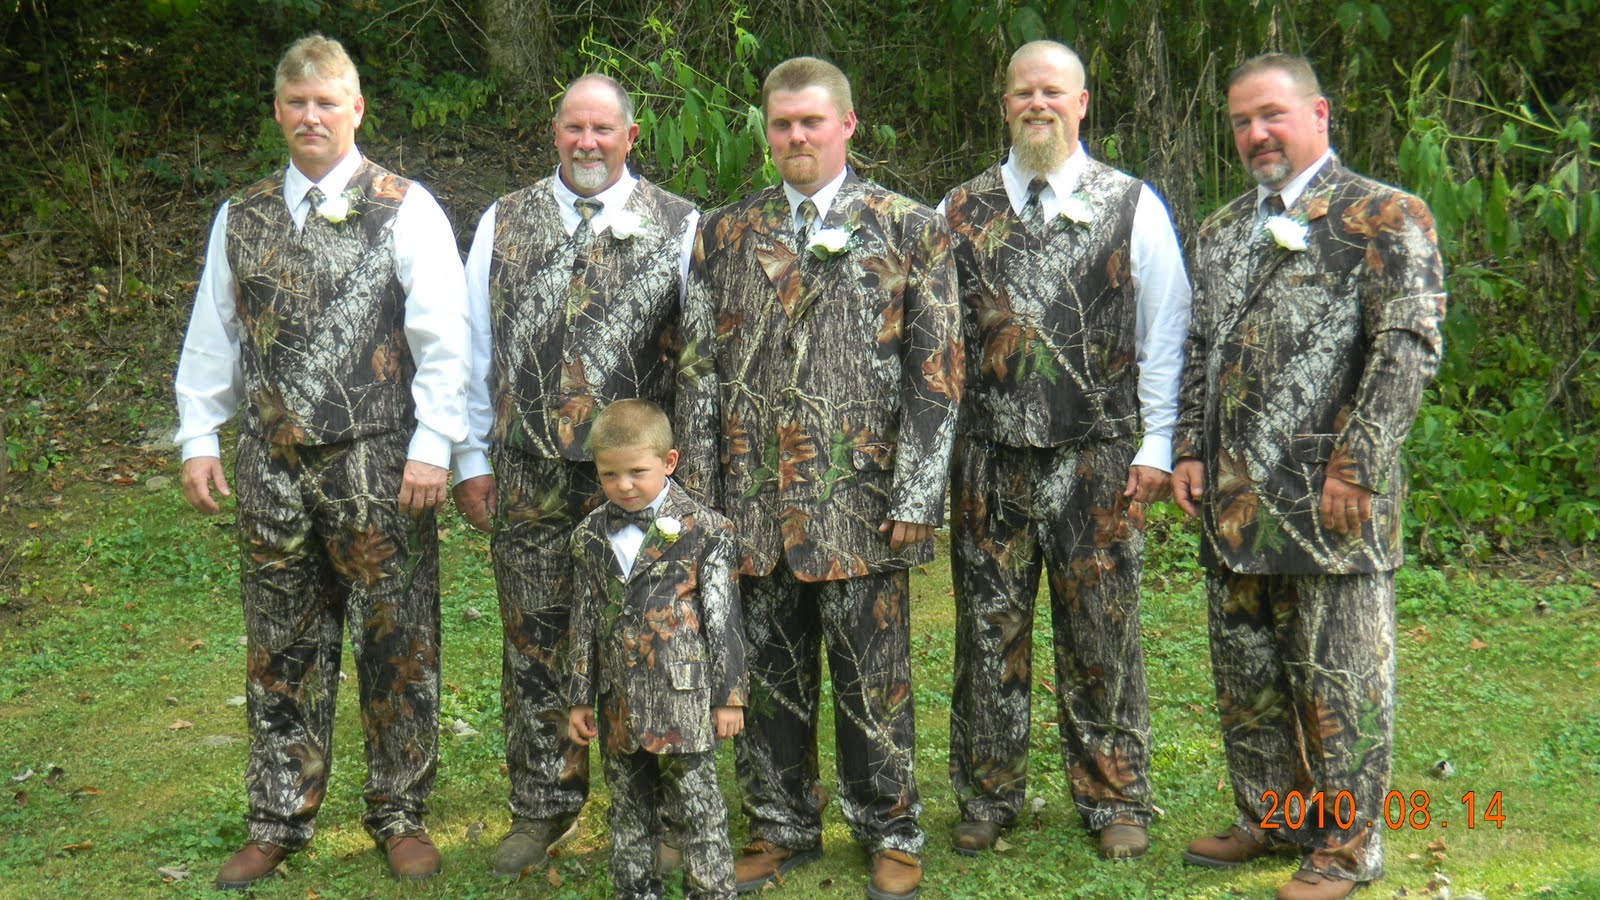 Whytneytravelstheworld August 14 A Redneck Wedding Day